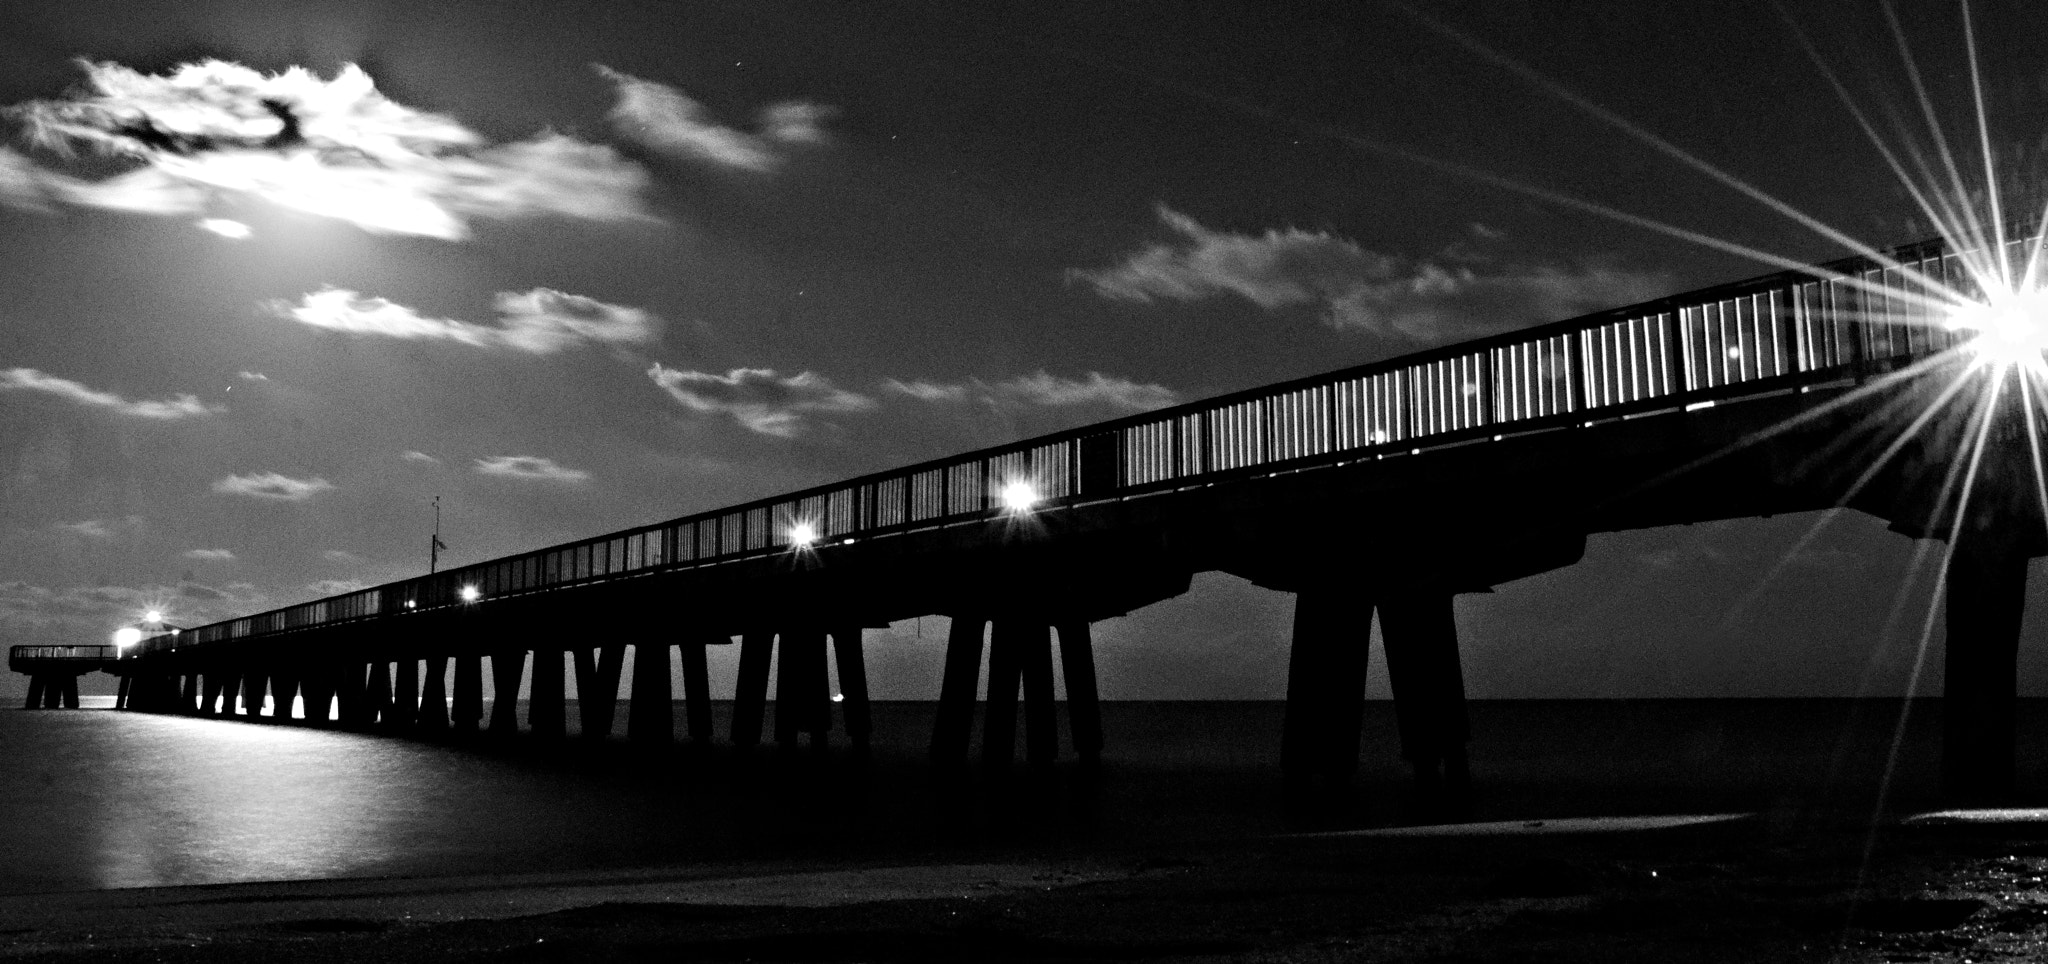 Photograph Moon over pier by Manuel Castillo on 500px